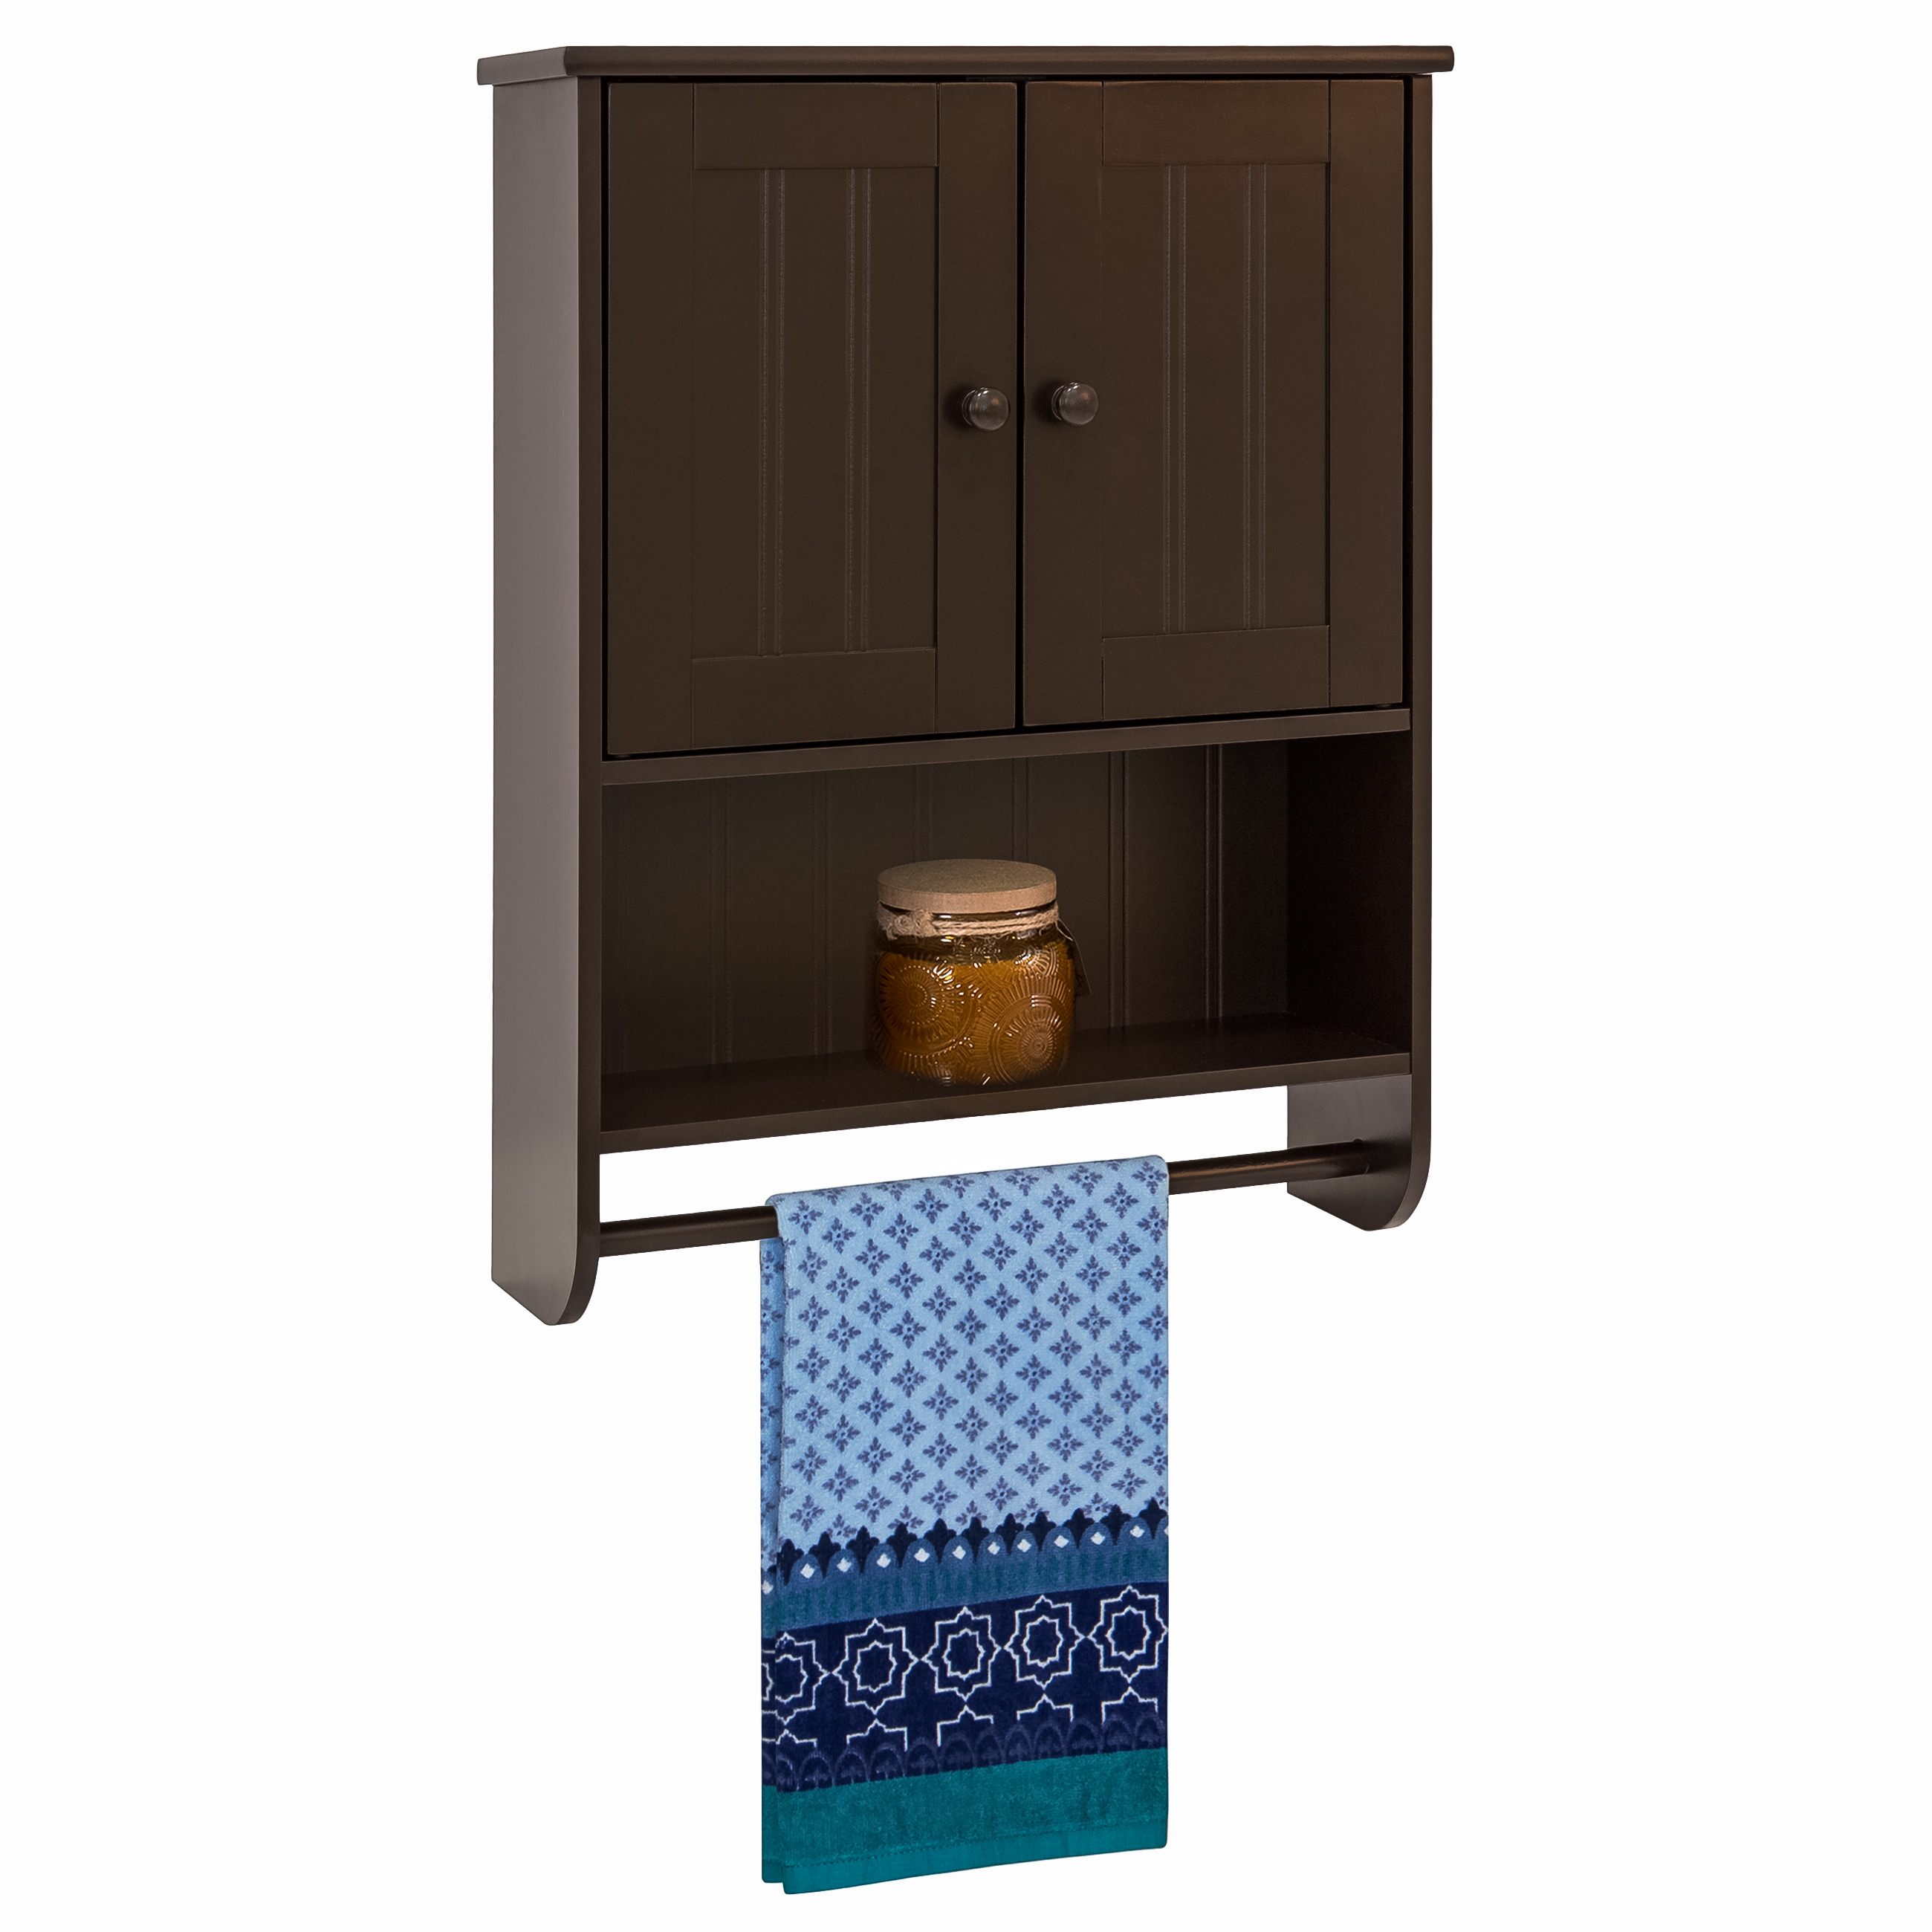 Best Choice Products Bathroom Storage Organization Wall Cabinet w/ Double Doors Towel Bar  sc 1 st  Walmart & Brown Bathroom Cabinets